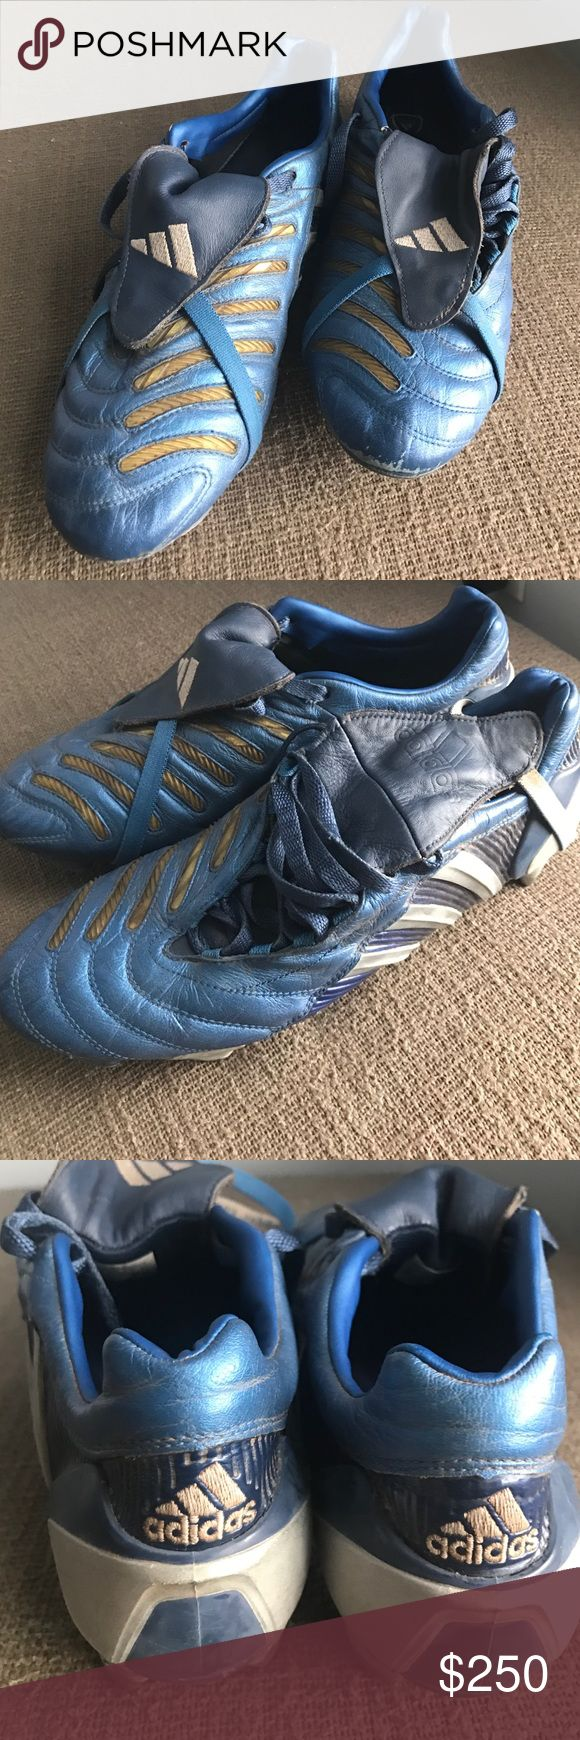 RARE Men's Adidas Predator Pulse Soccer Cleats ✨SPECIAL MARKDOWN✨ Rare limited edition Men's Adidas Predator Pulse Soccer Cleats in Blue. Comes with cleat key! Adidas Shoes Athletic Shoes